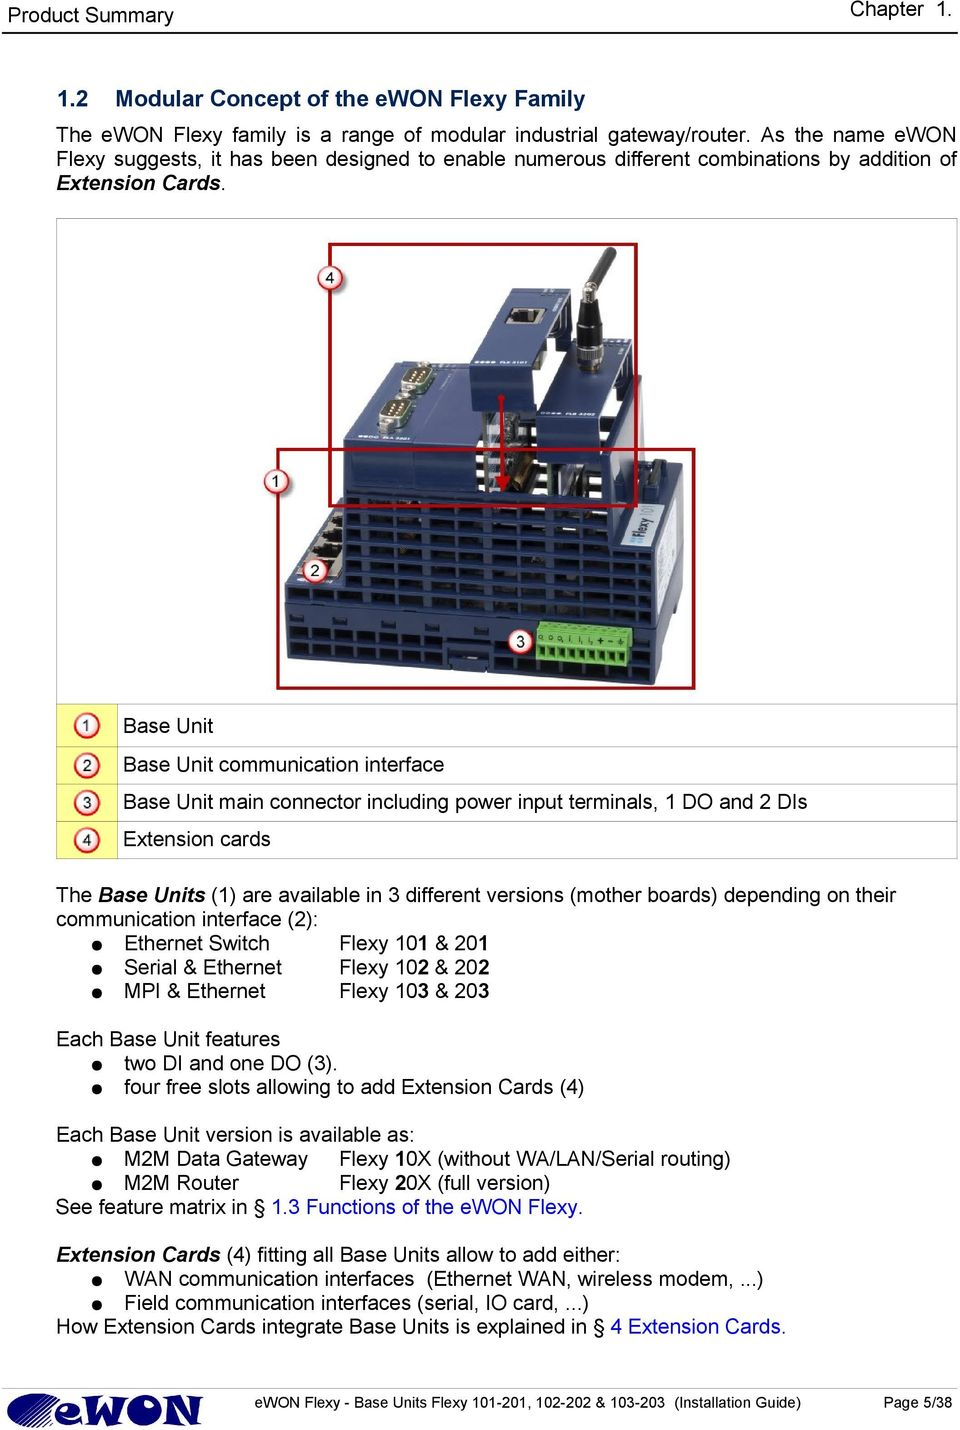 Base Unit Base Unit communication interface Base Unit main connector including power input terminals, 1 DO and 2 DIs Extension cards The Base Units (1) are available in 3 different versions (mother